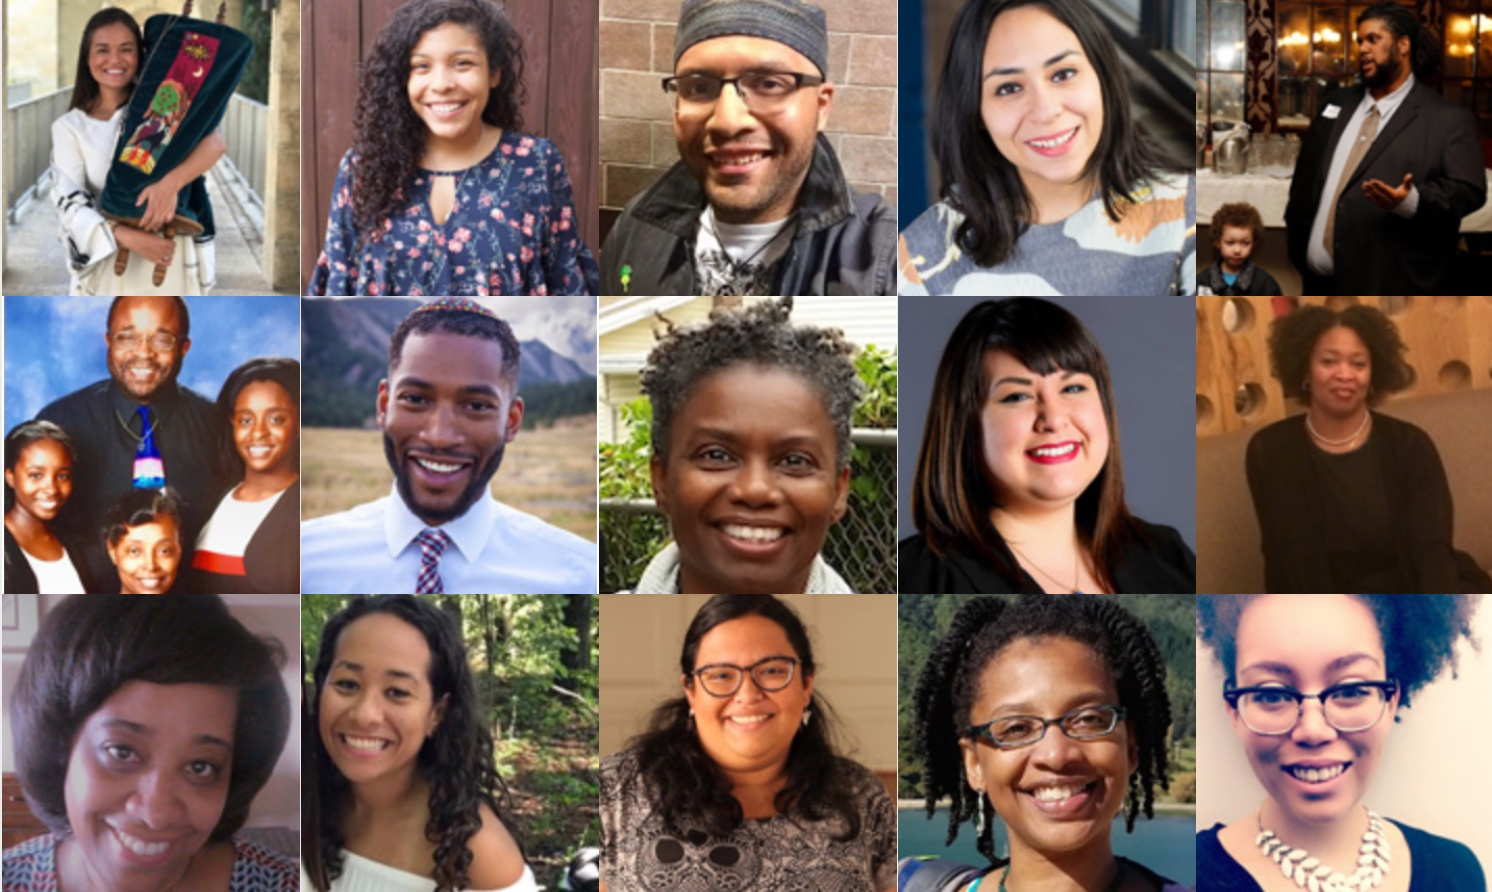 "URJ Invests in Jews of Color Leadership Development - 3/07/2018 - ""The 2018 fellows were selected from a committed, passionate, highly-qualified applicant pool representing diversity in age, language, race, ethnicity, profession, location, and sexual orientation. There was a 50% increase in the number of applicants over the fellowship's first year.By cultivating fellowship participants as emerging Reform Movement leaders, the URJ is developing another pipeline - like NFTY and the L'Taken Social Justice Seminars - for future HUC-JIR students and staff within the URJ's network of camps, communities, and congregations."""